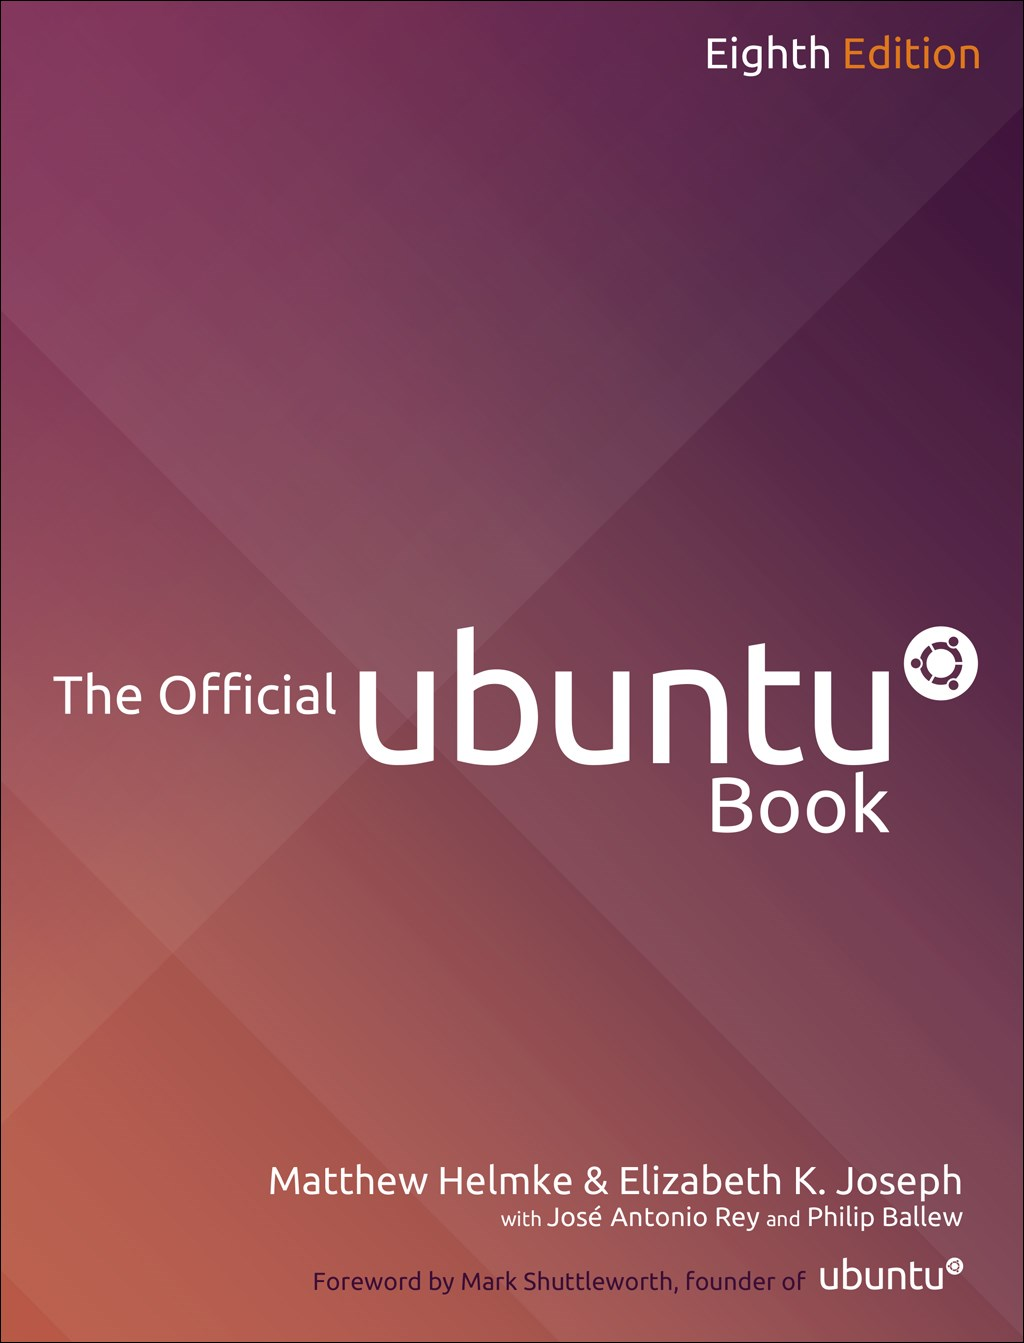 The Official Ubuntu Book, 8th Edition